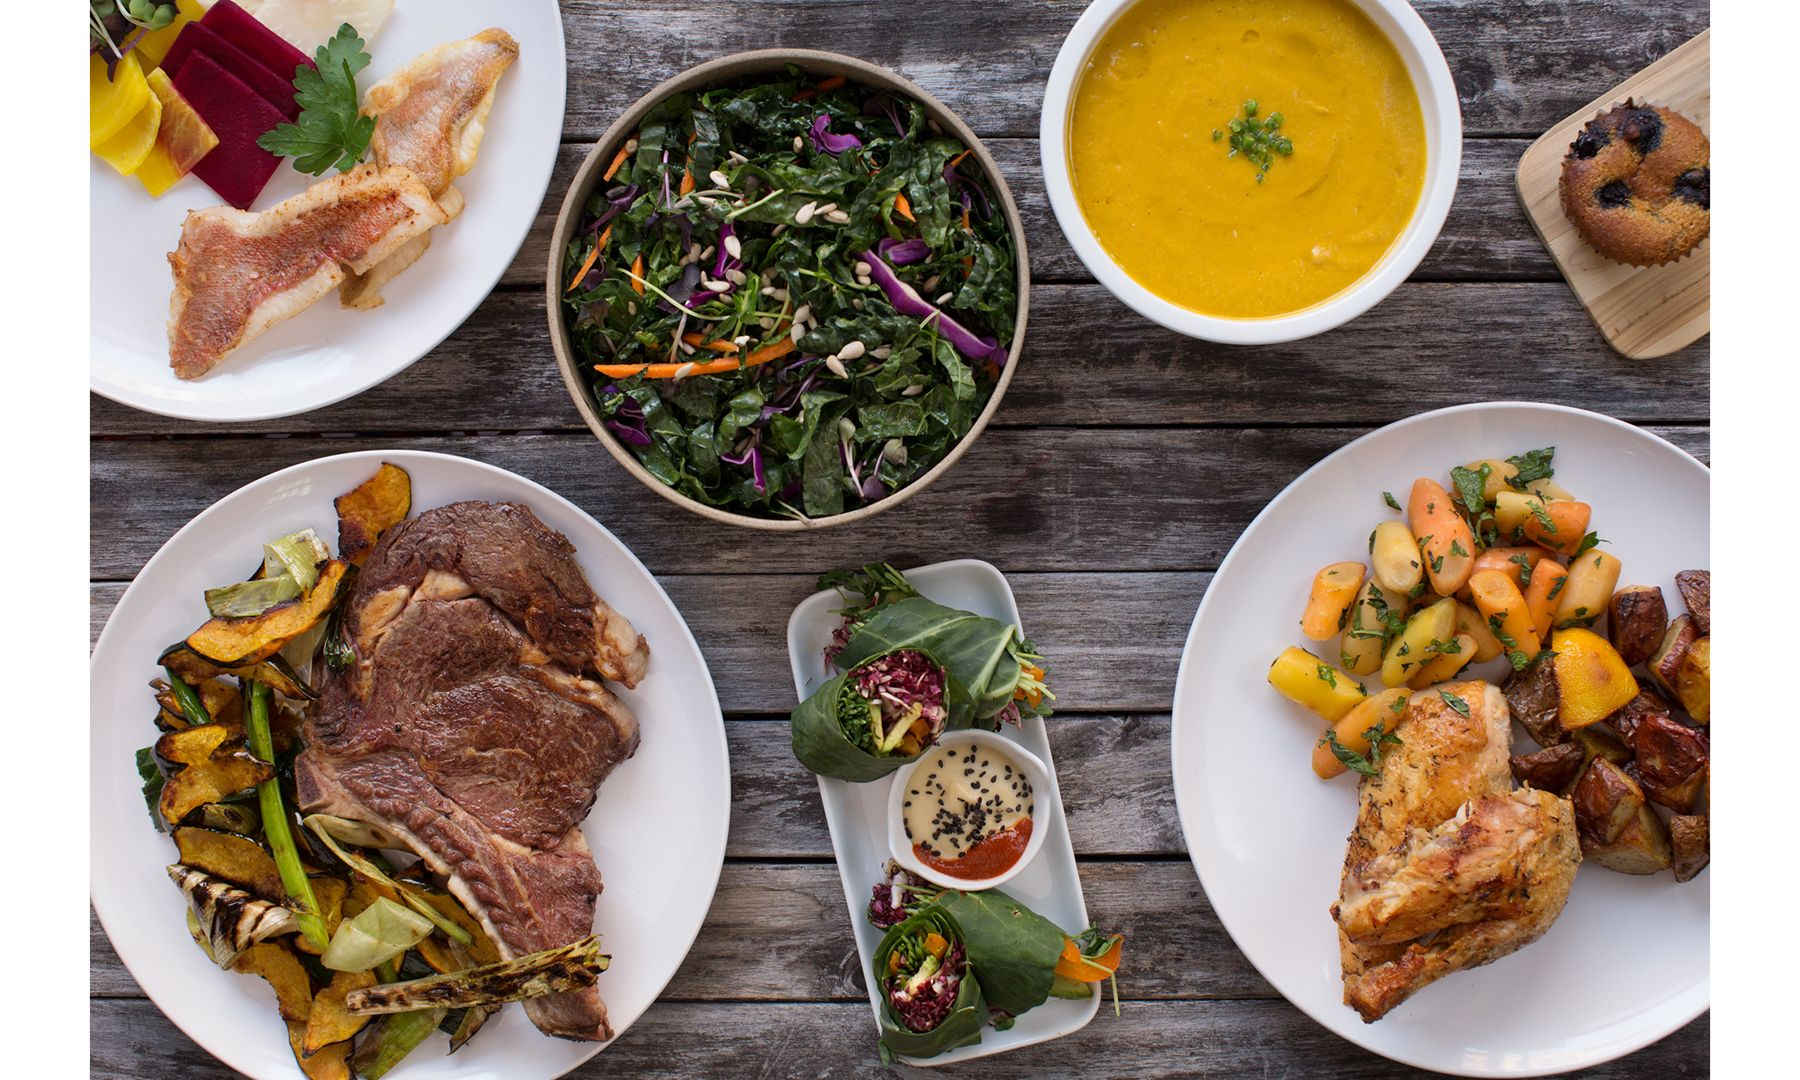 Best Meal Delivery Services Dujour Best Meal Delivery Whole Food Recipes Meals